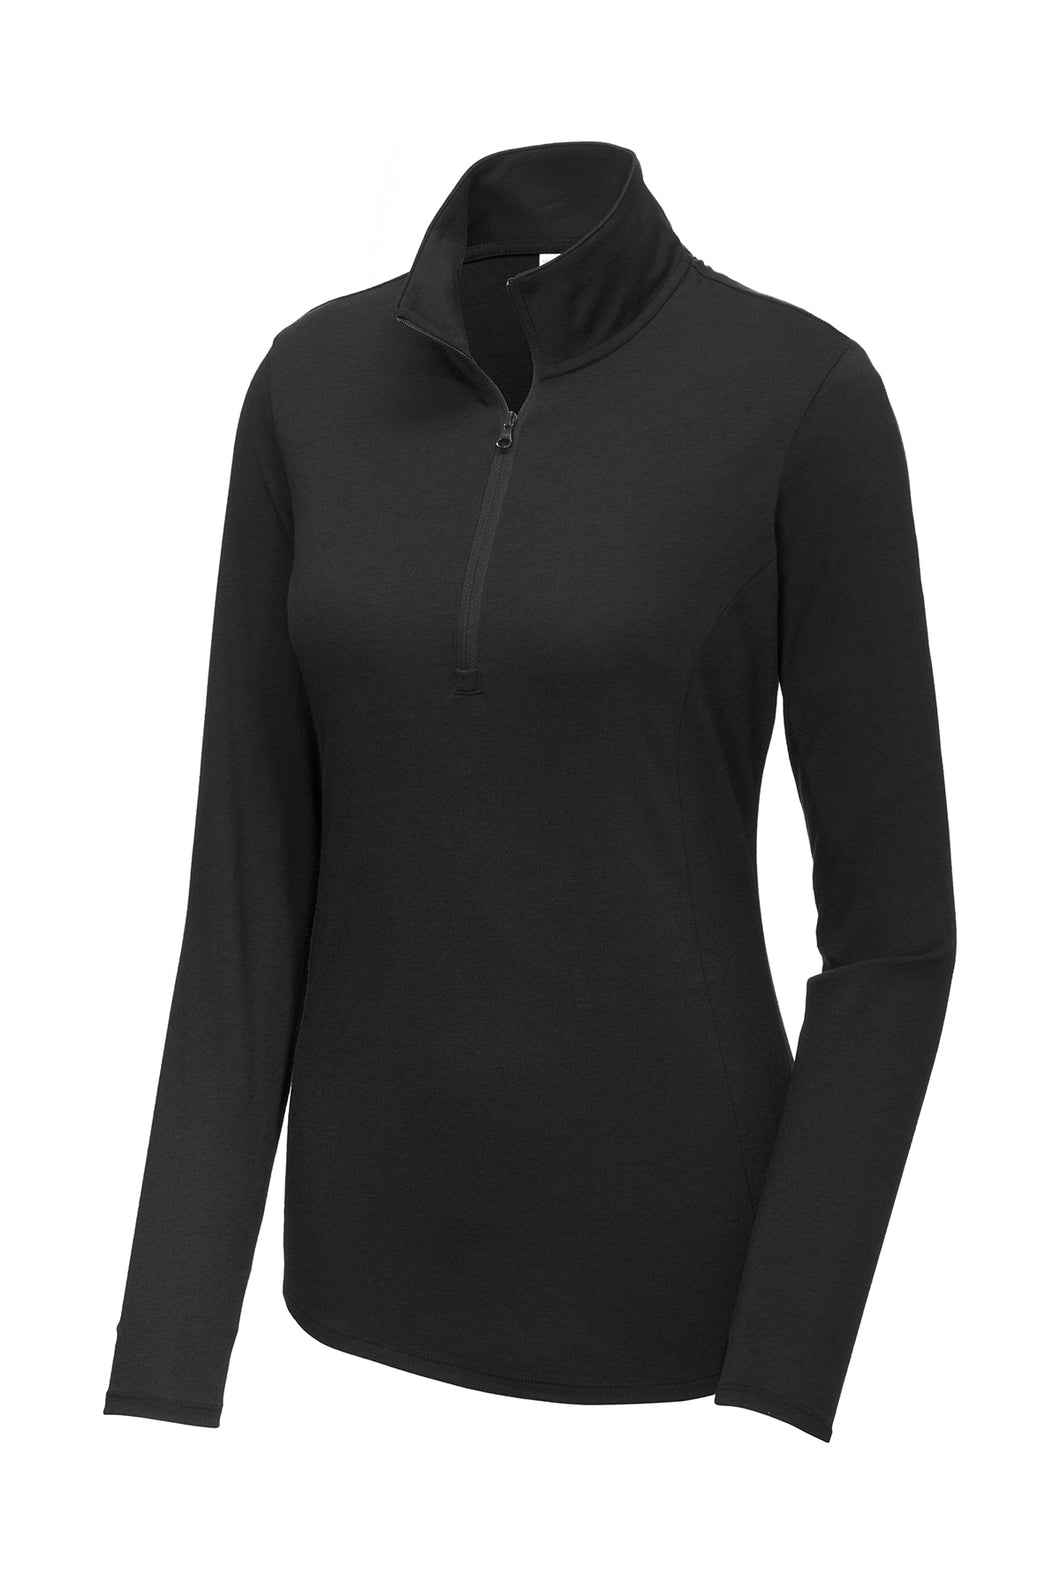 Ladies Fusion Performance Quarter-zip Pullover - Black